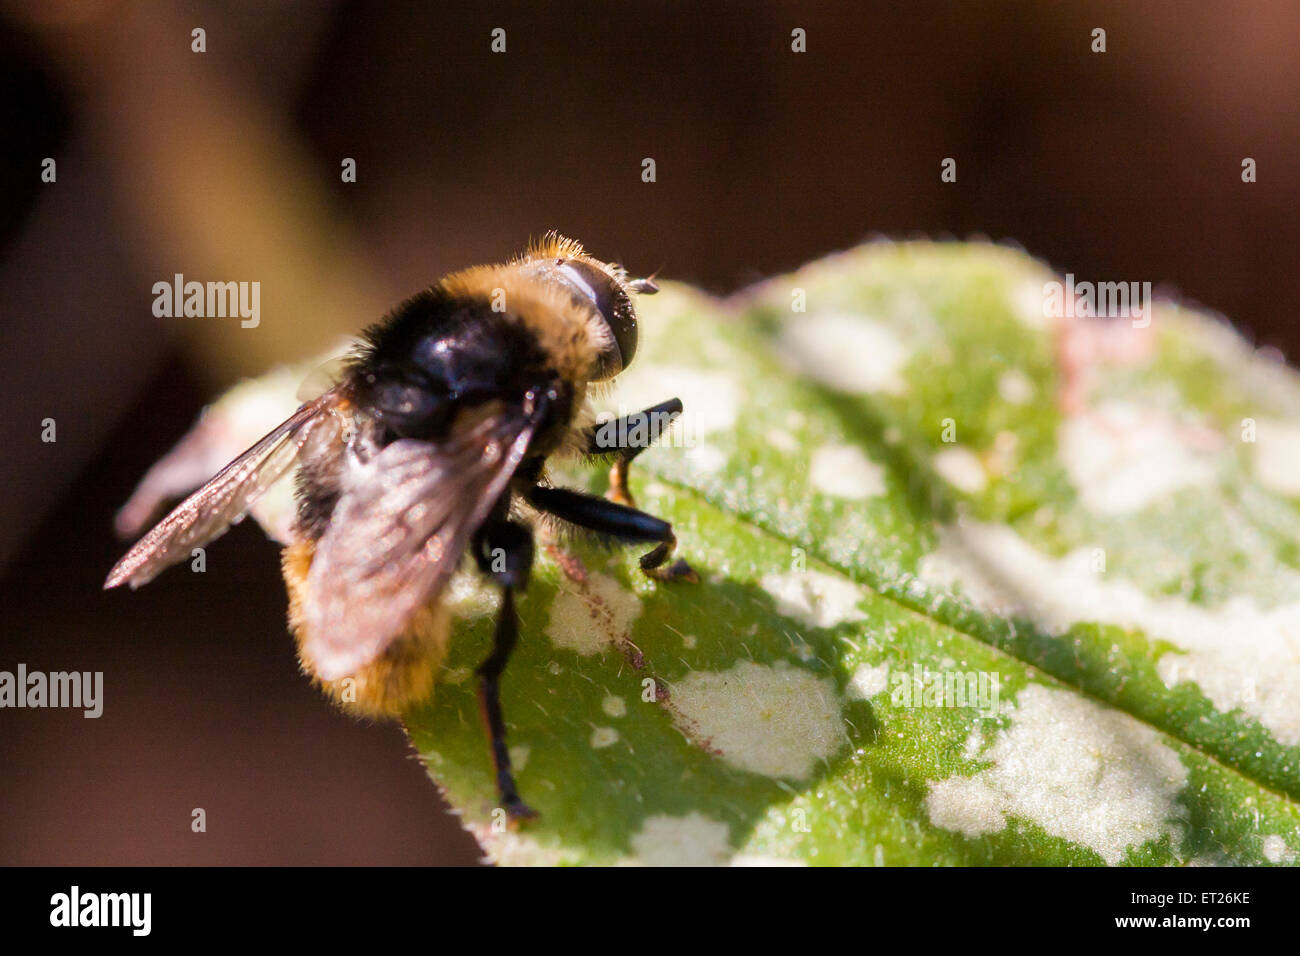 Back in the garden for #30DaysWild day 7, found this fly that looks like a bumble bee. Stock Photo